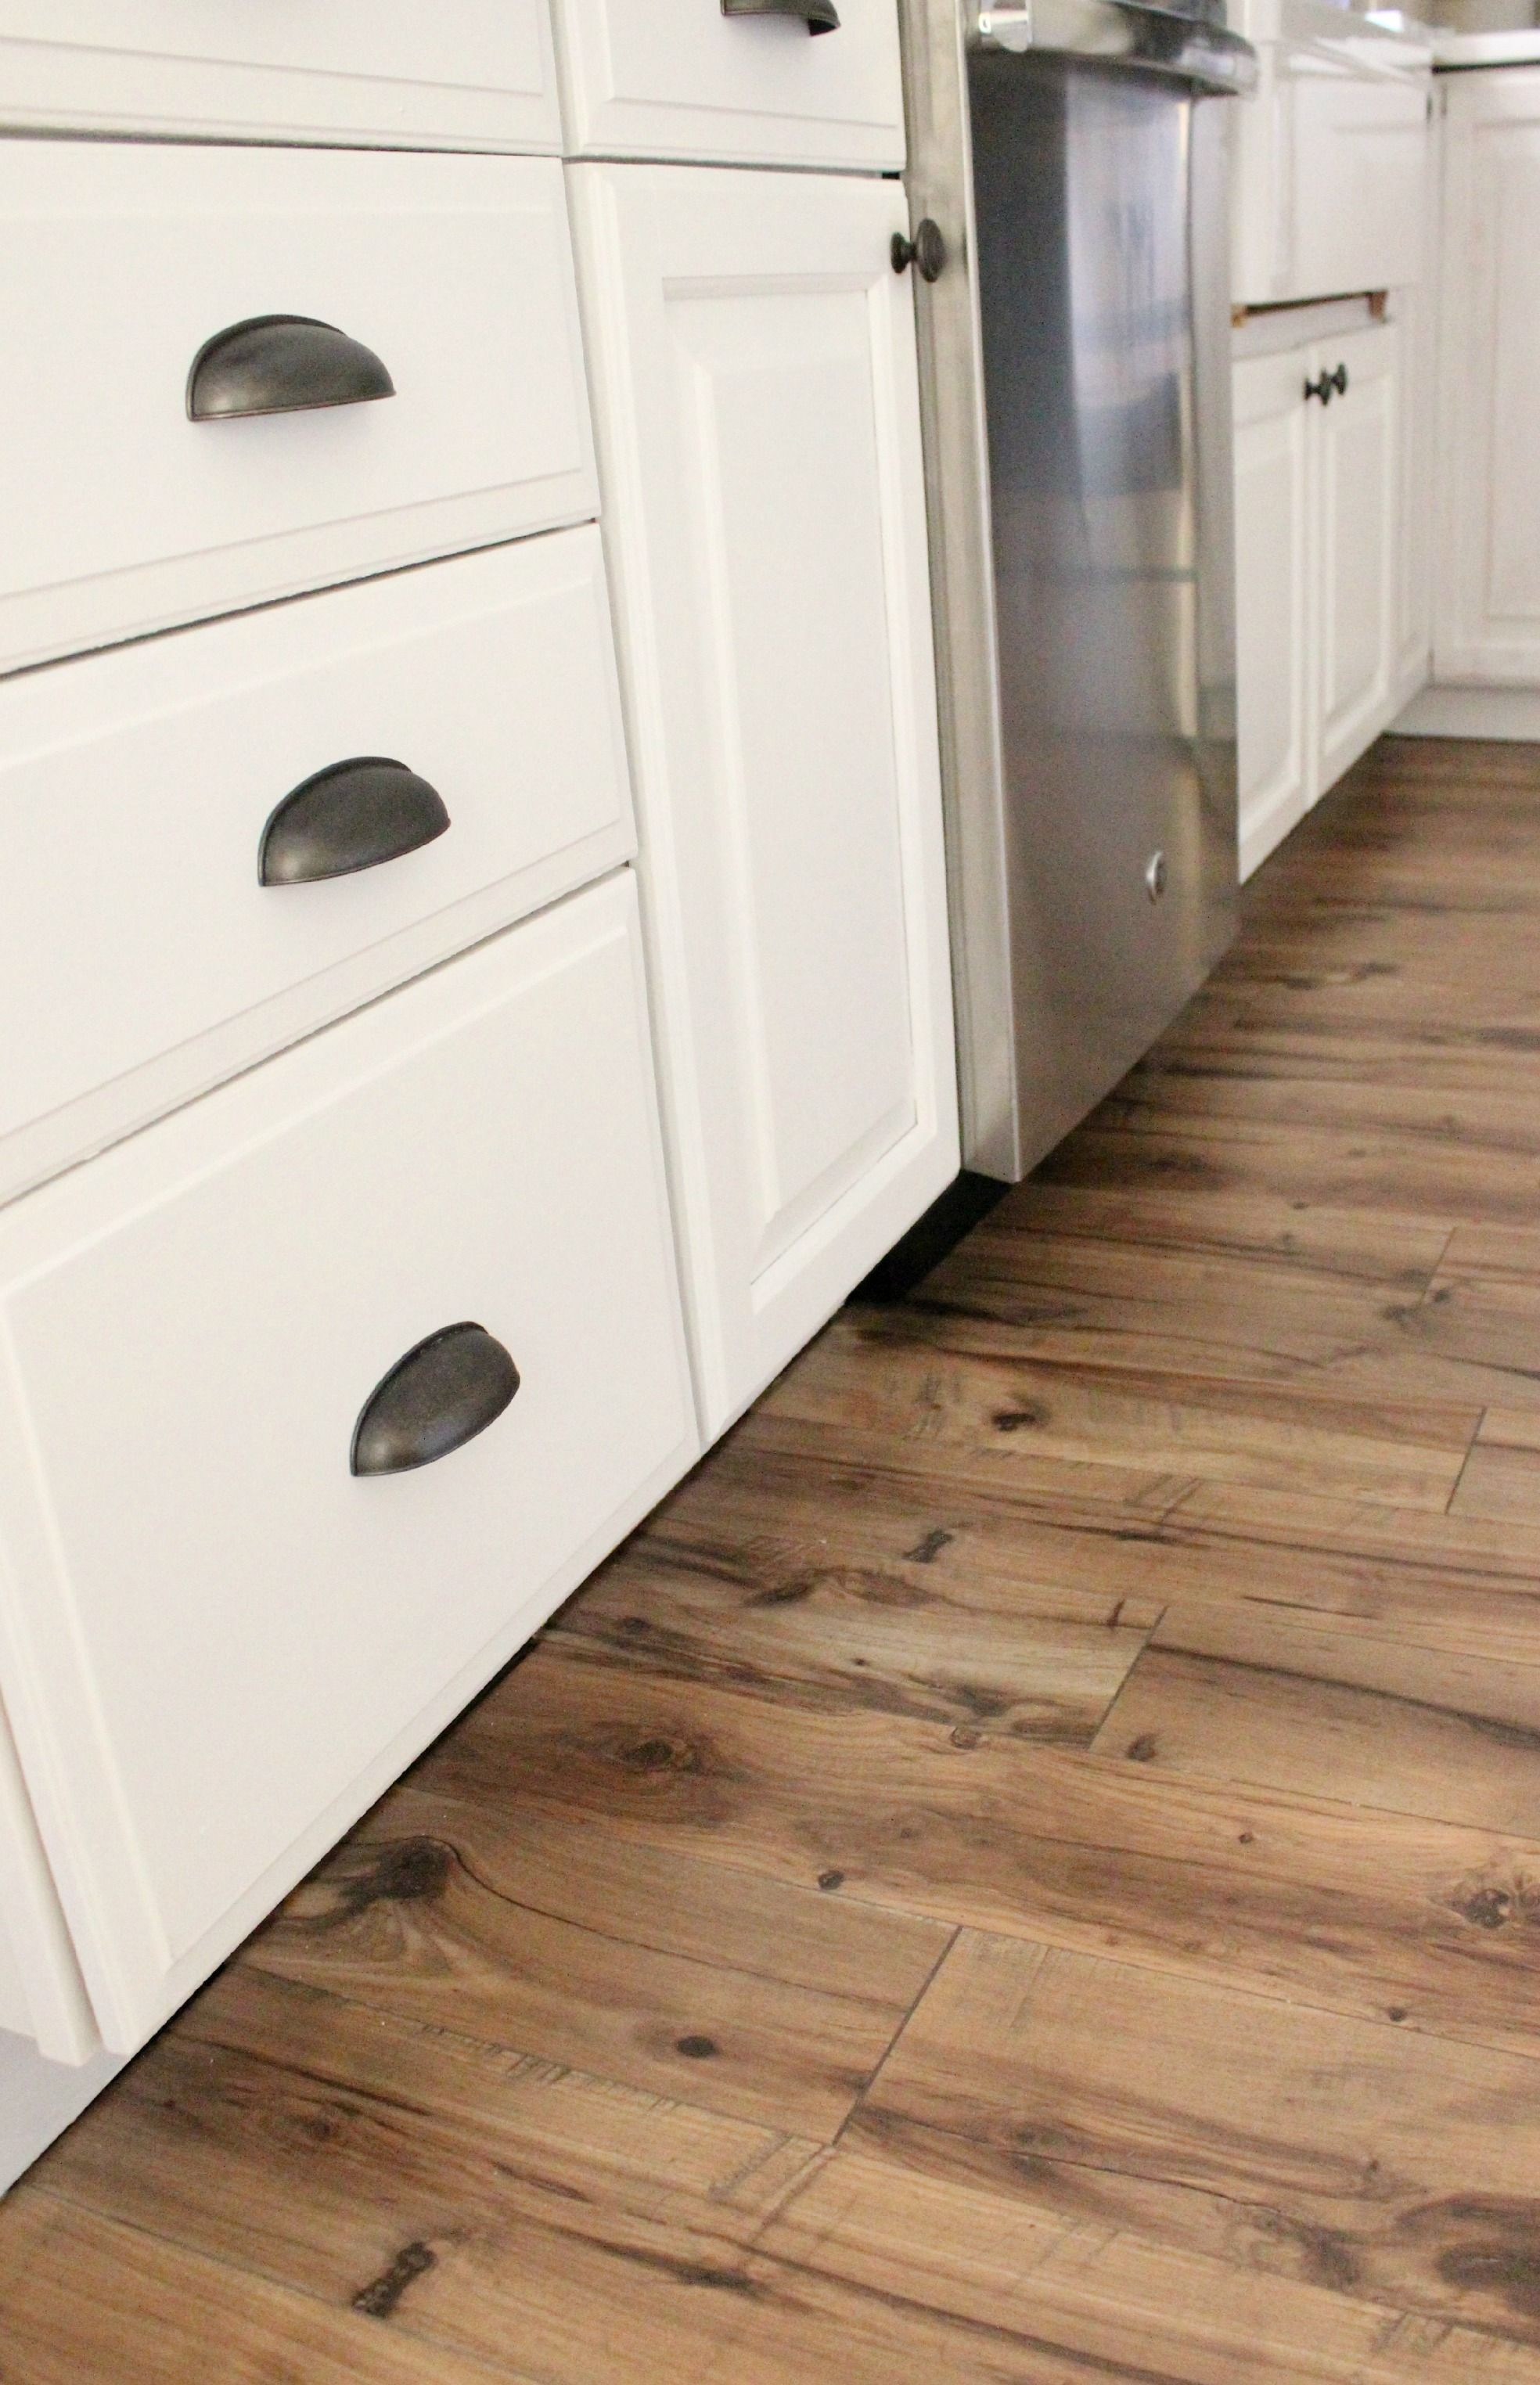 costco hardwood flooring sale of costco shaw flooring reviews 50 fresh shaw laminate flooring reviews intended for costco shaw flooring reviews home why and how we chose our pergo flooring